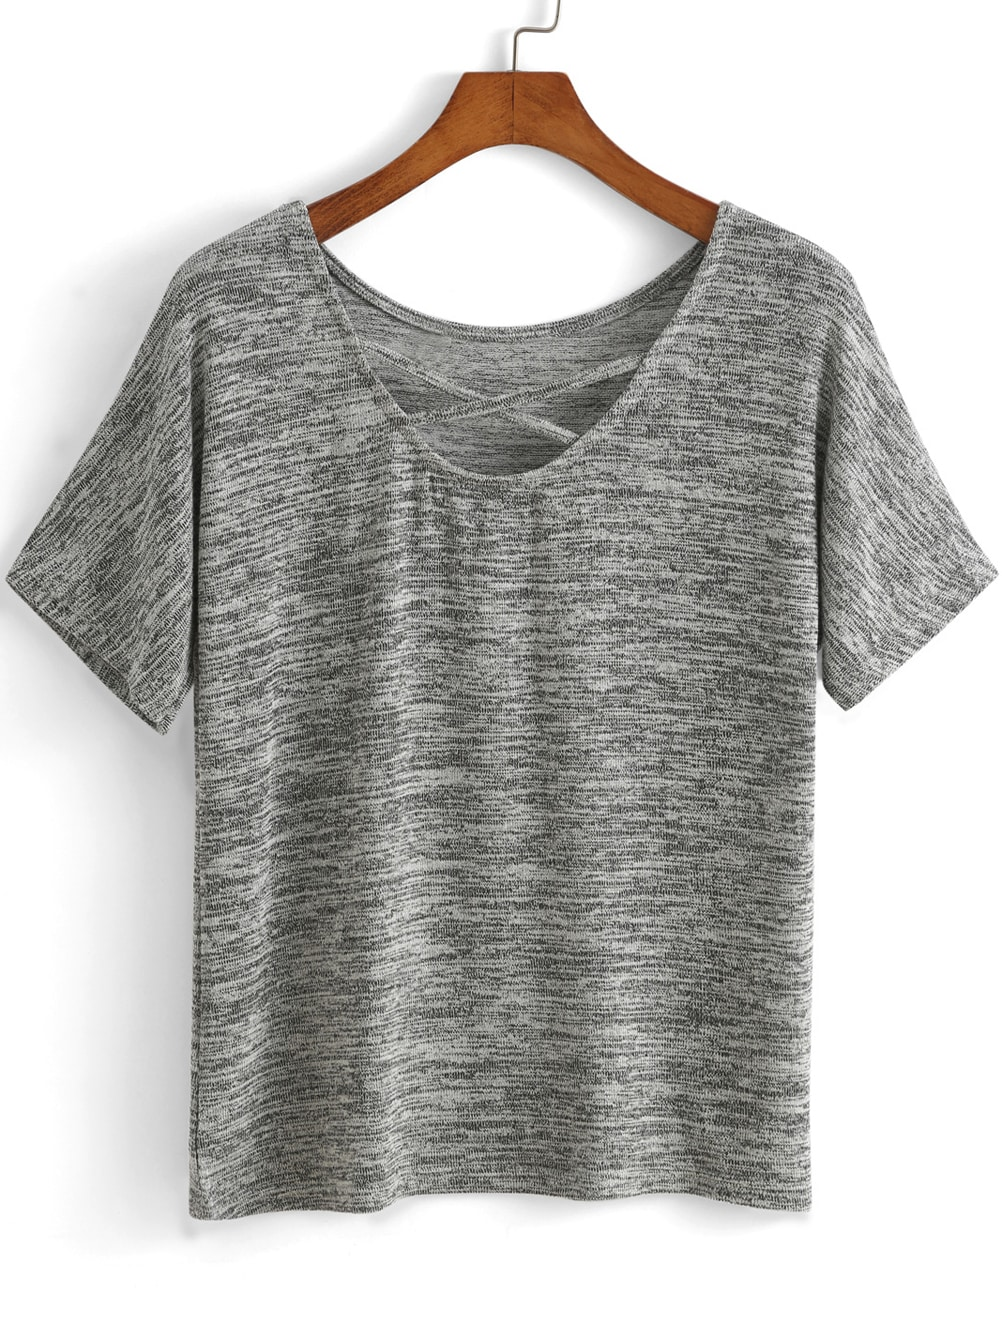 Criss Cross Front Grey T Shirtfor Women Romwe